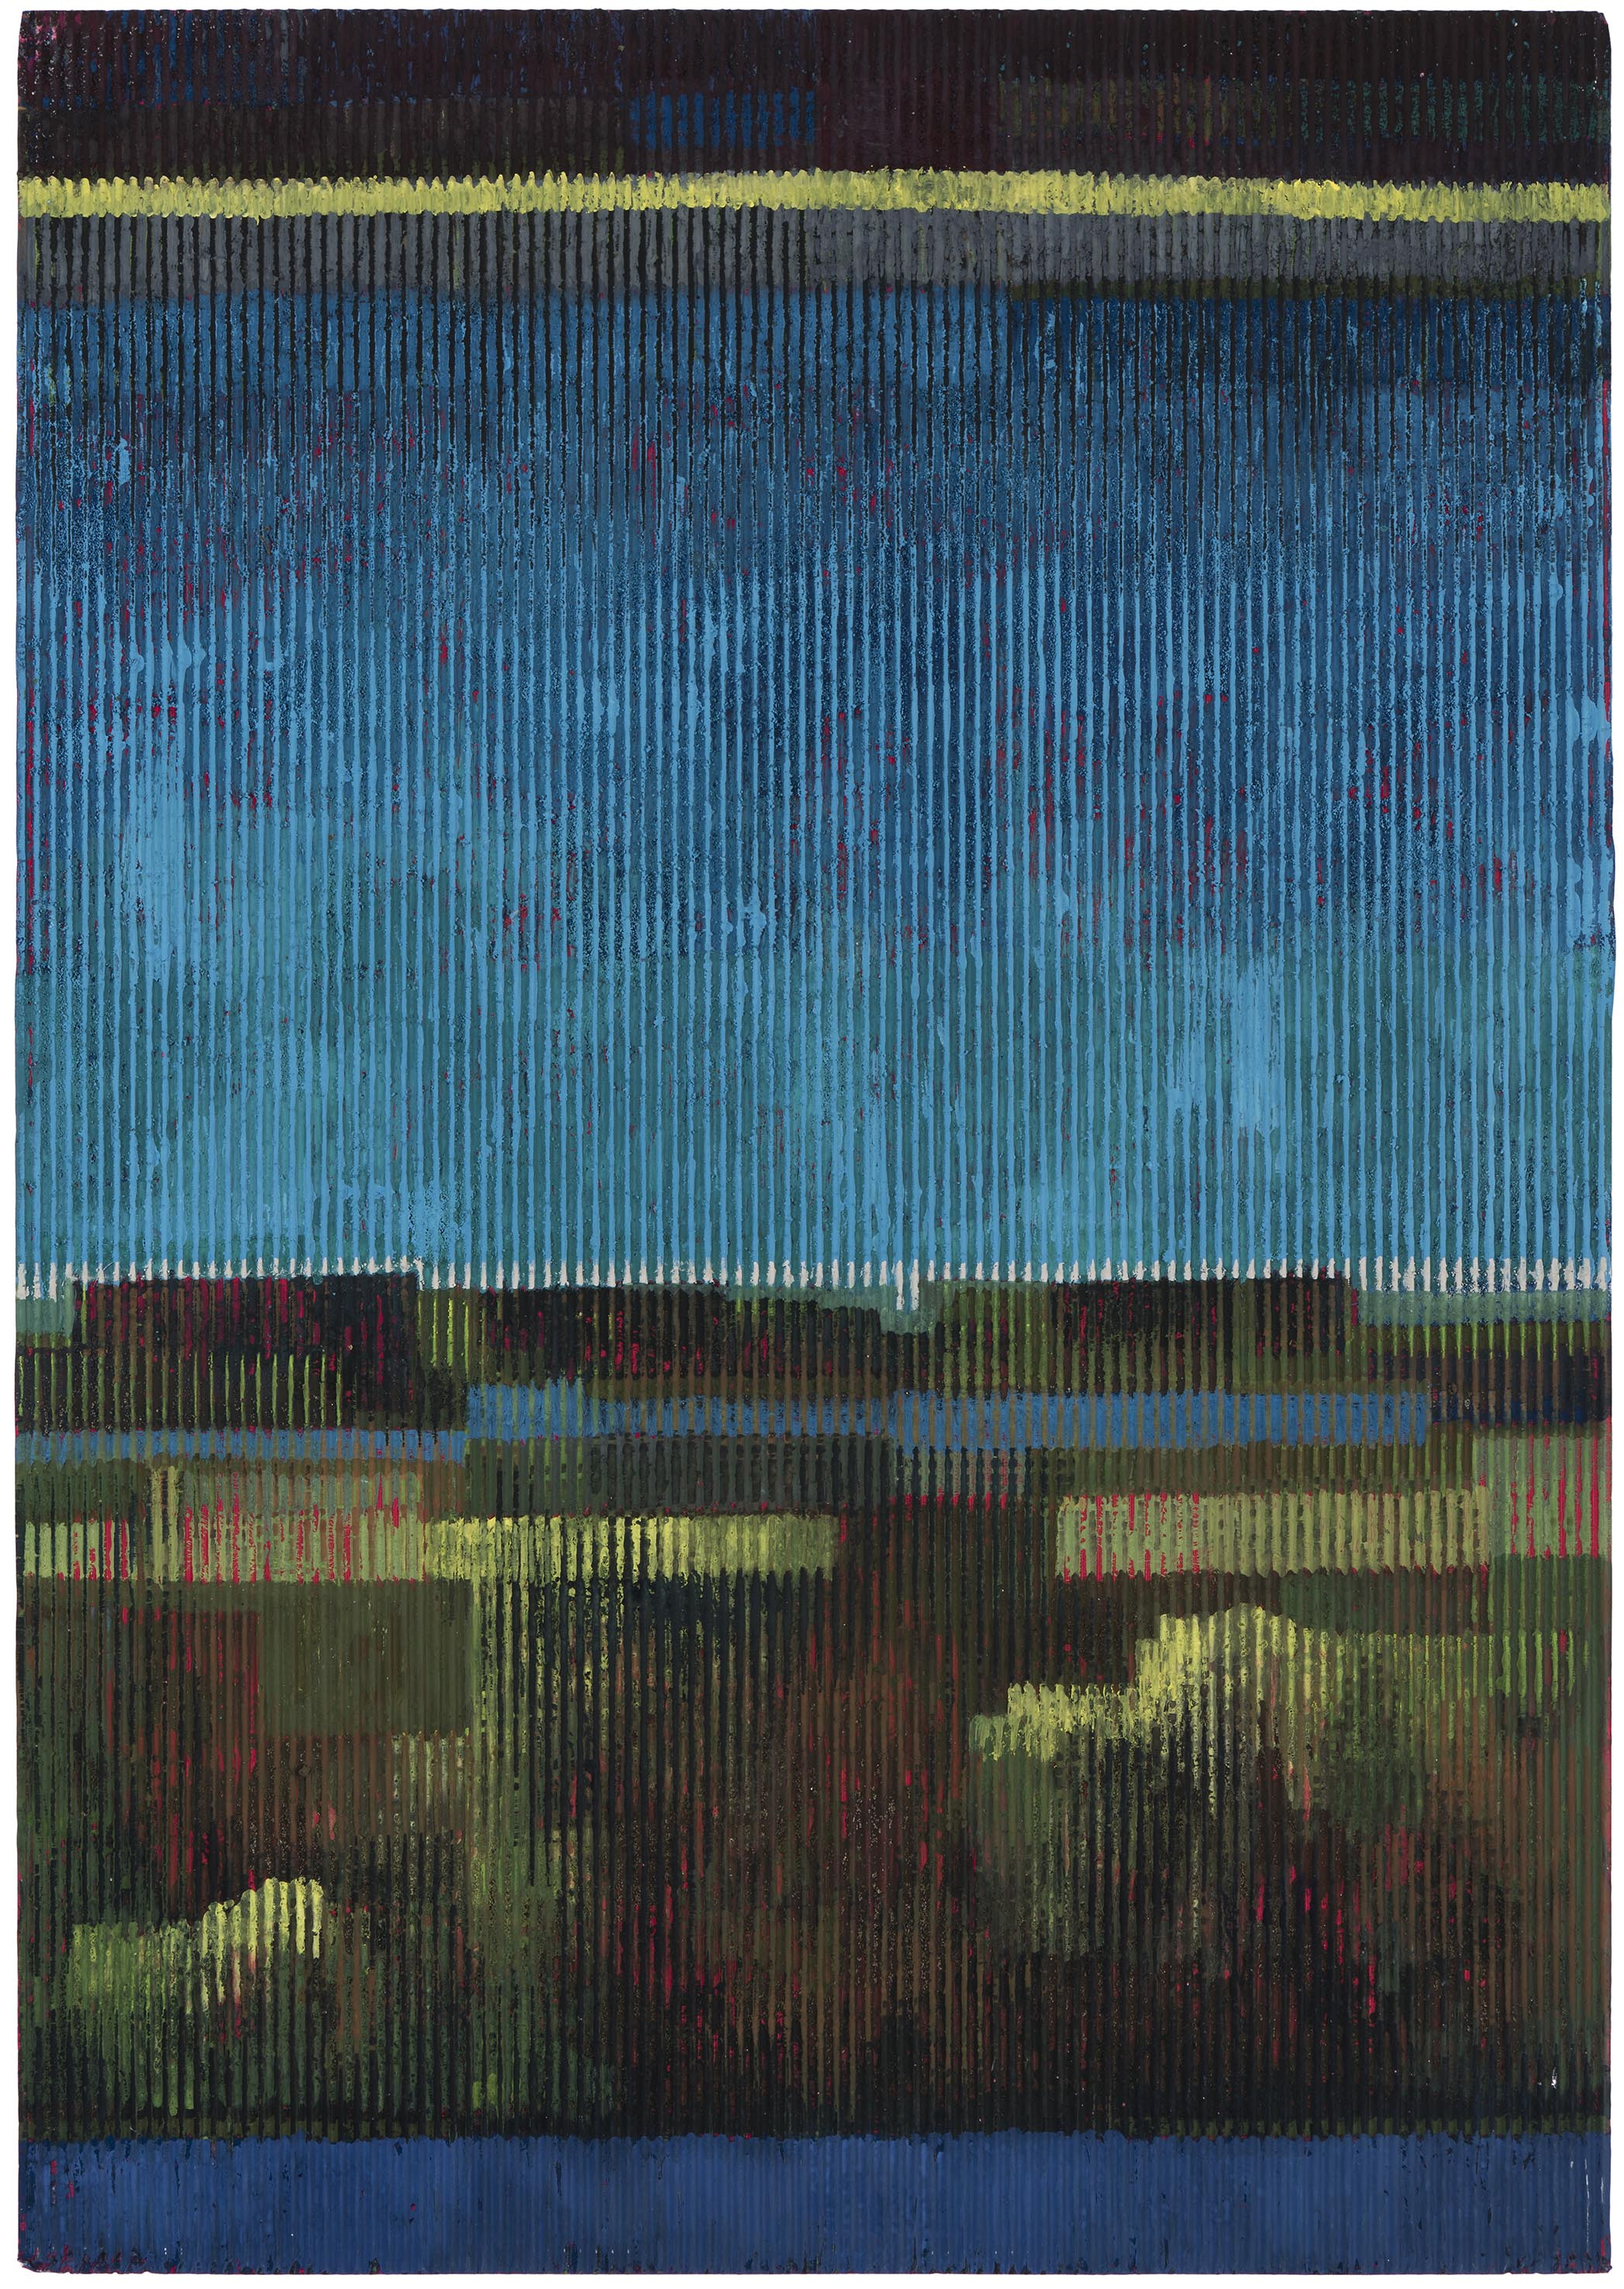 Midsummer night 3 (with yellow). 2015. gouache and acrylic on corrugated card. 50 x 35 cm. SOLD